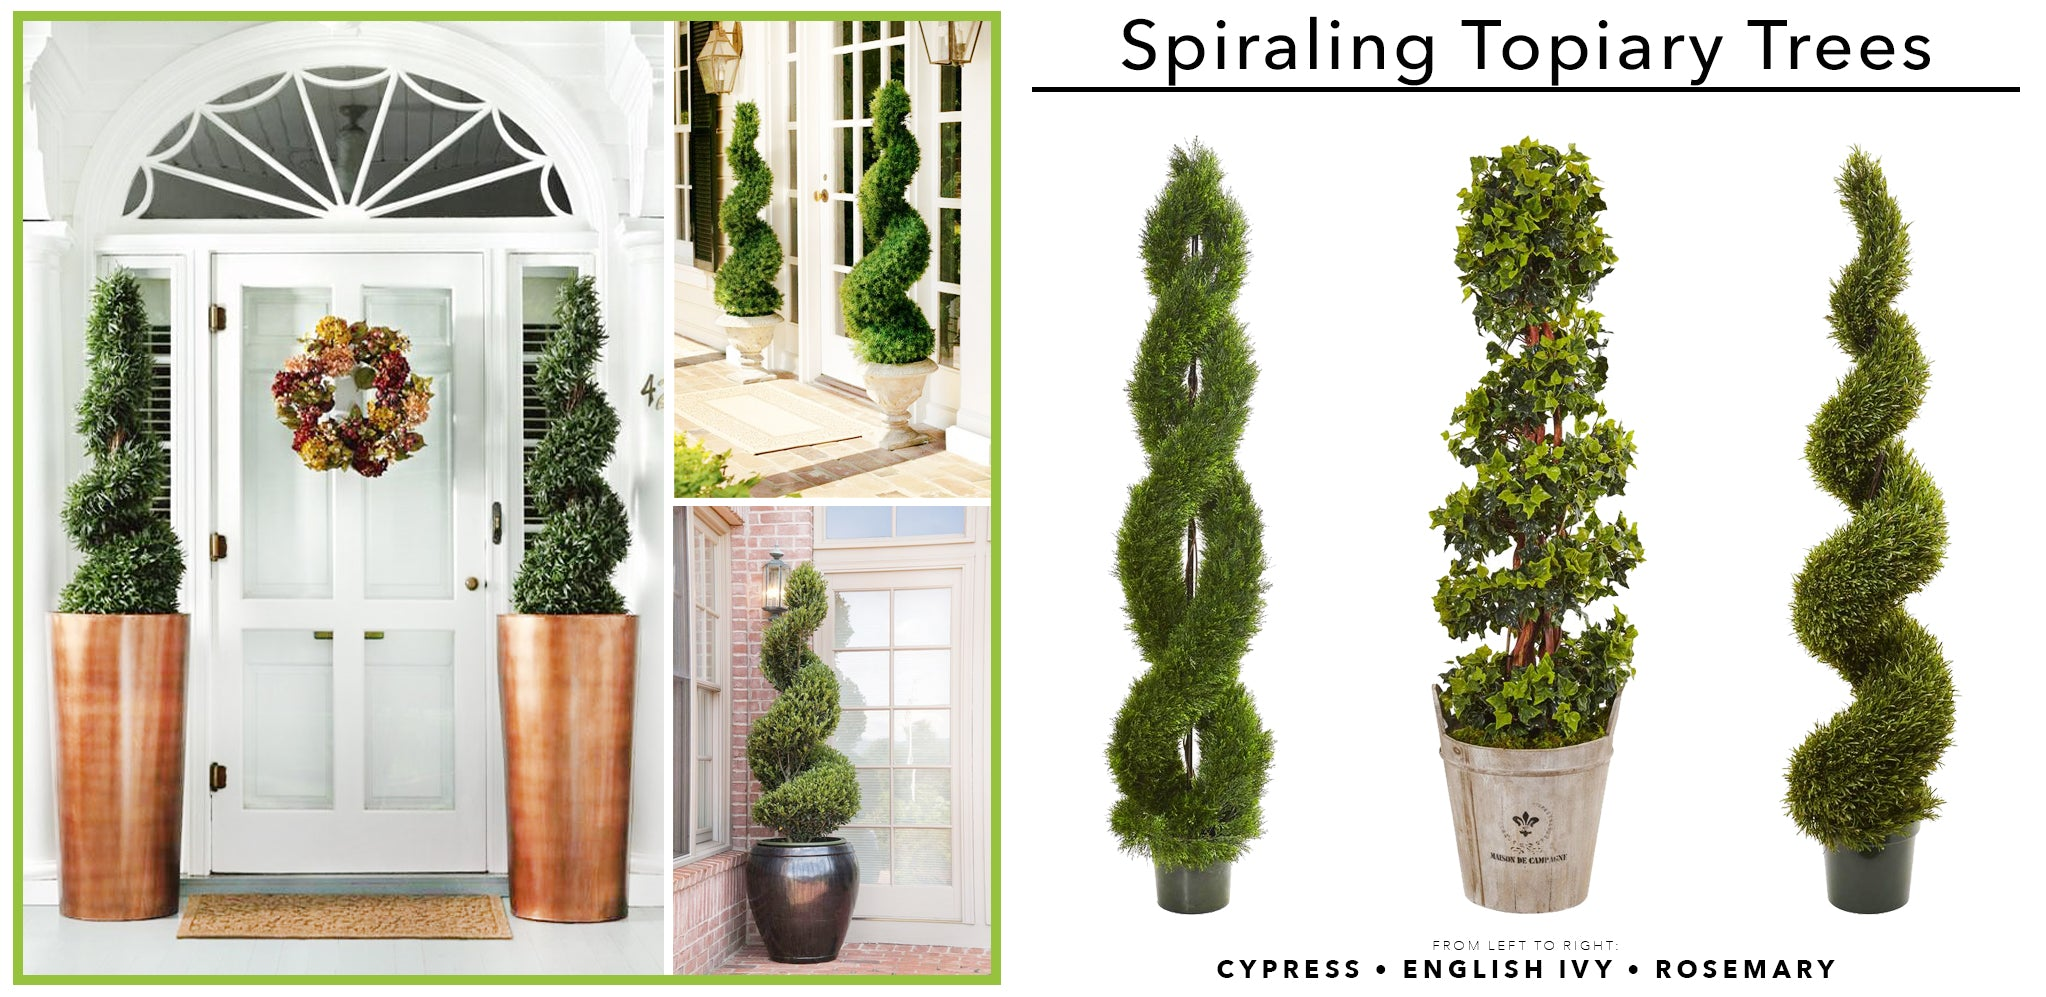 Spiraling Artificial Topiary Trees